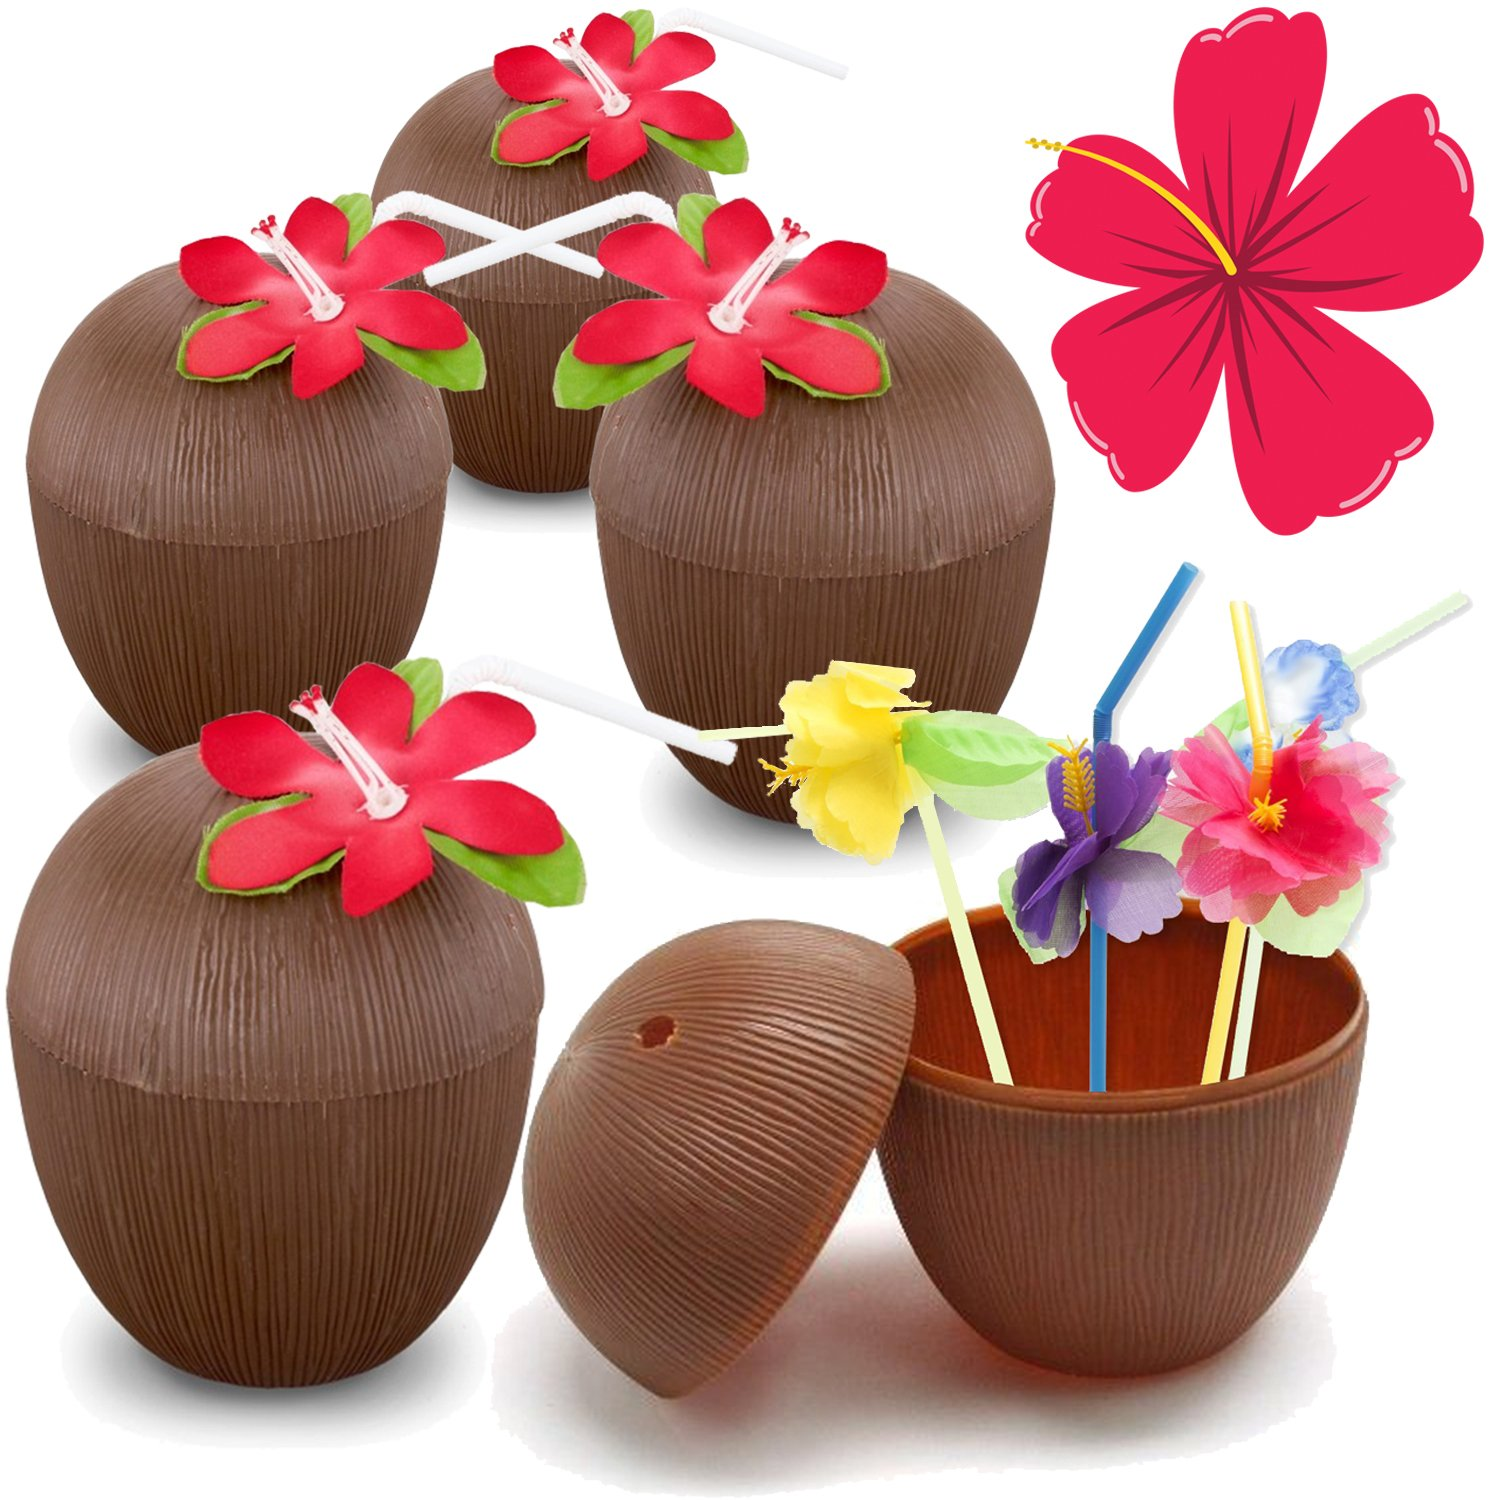 Hogue WS LLC Plastic Coconut Cups For Fun Hawaiian Luau Children's Parties – Bulk 10 Pack – Comes With Straw And Flower – Tiki And Beach Theme Party Supplies (10 Cups + Straws)